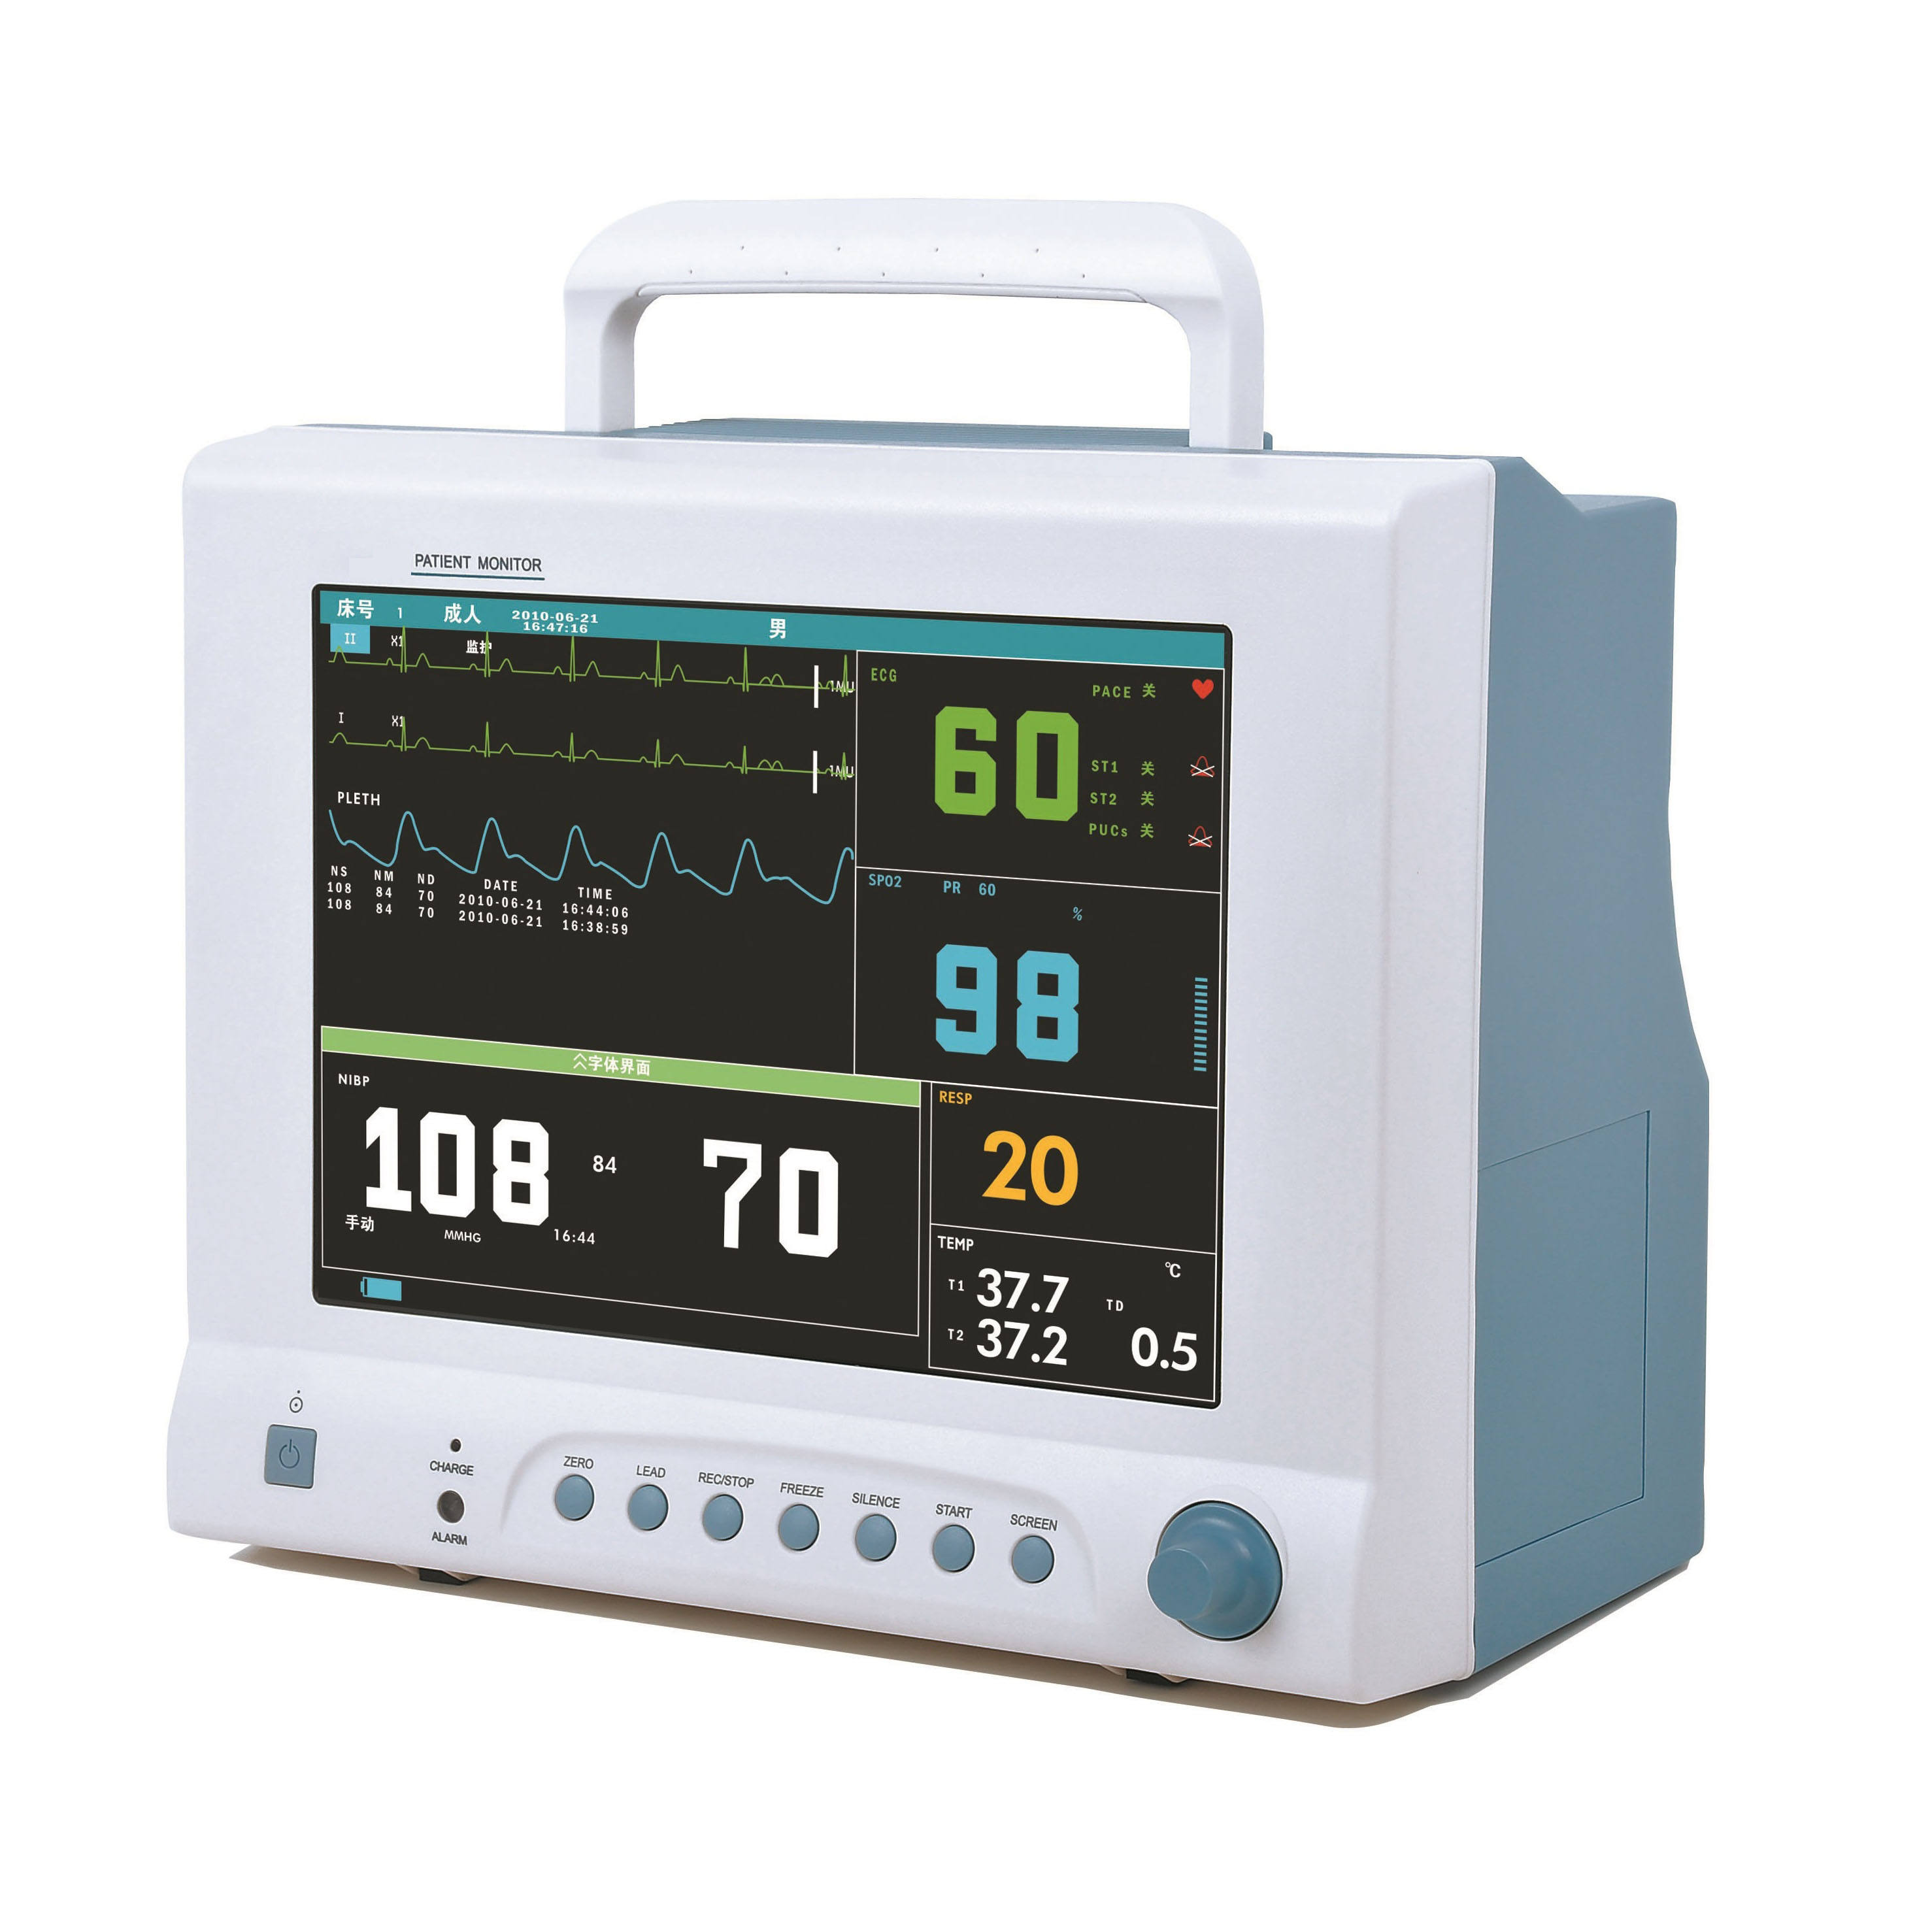 Fetal Monitor Cheap Price Of Portable Twins Therapy CTG Fetal Doppler Baby Heart Monitor For Hospital Use